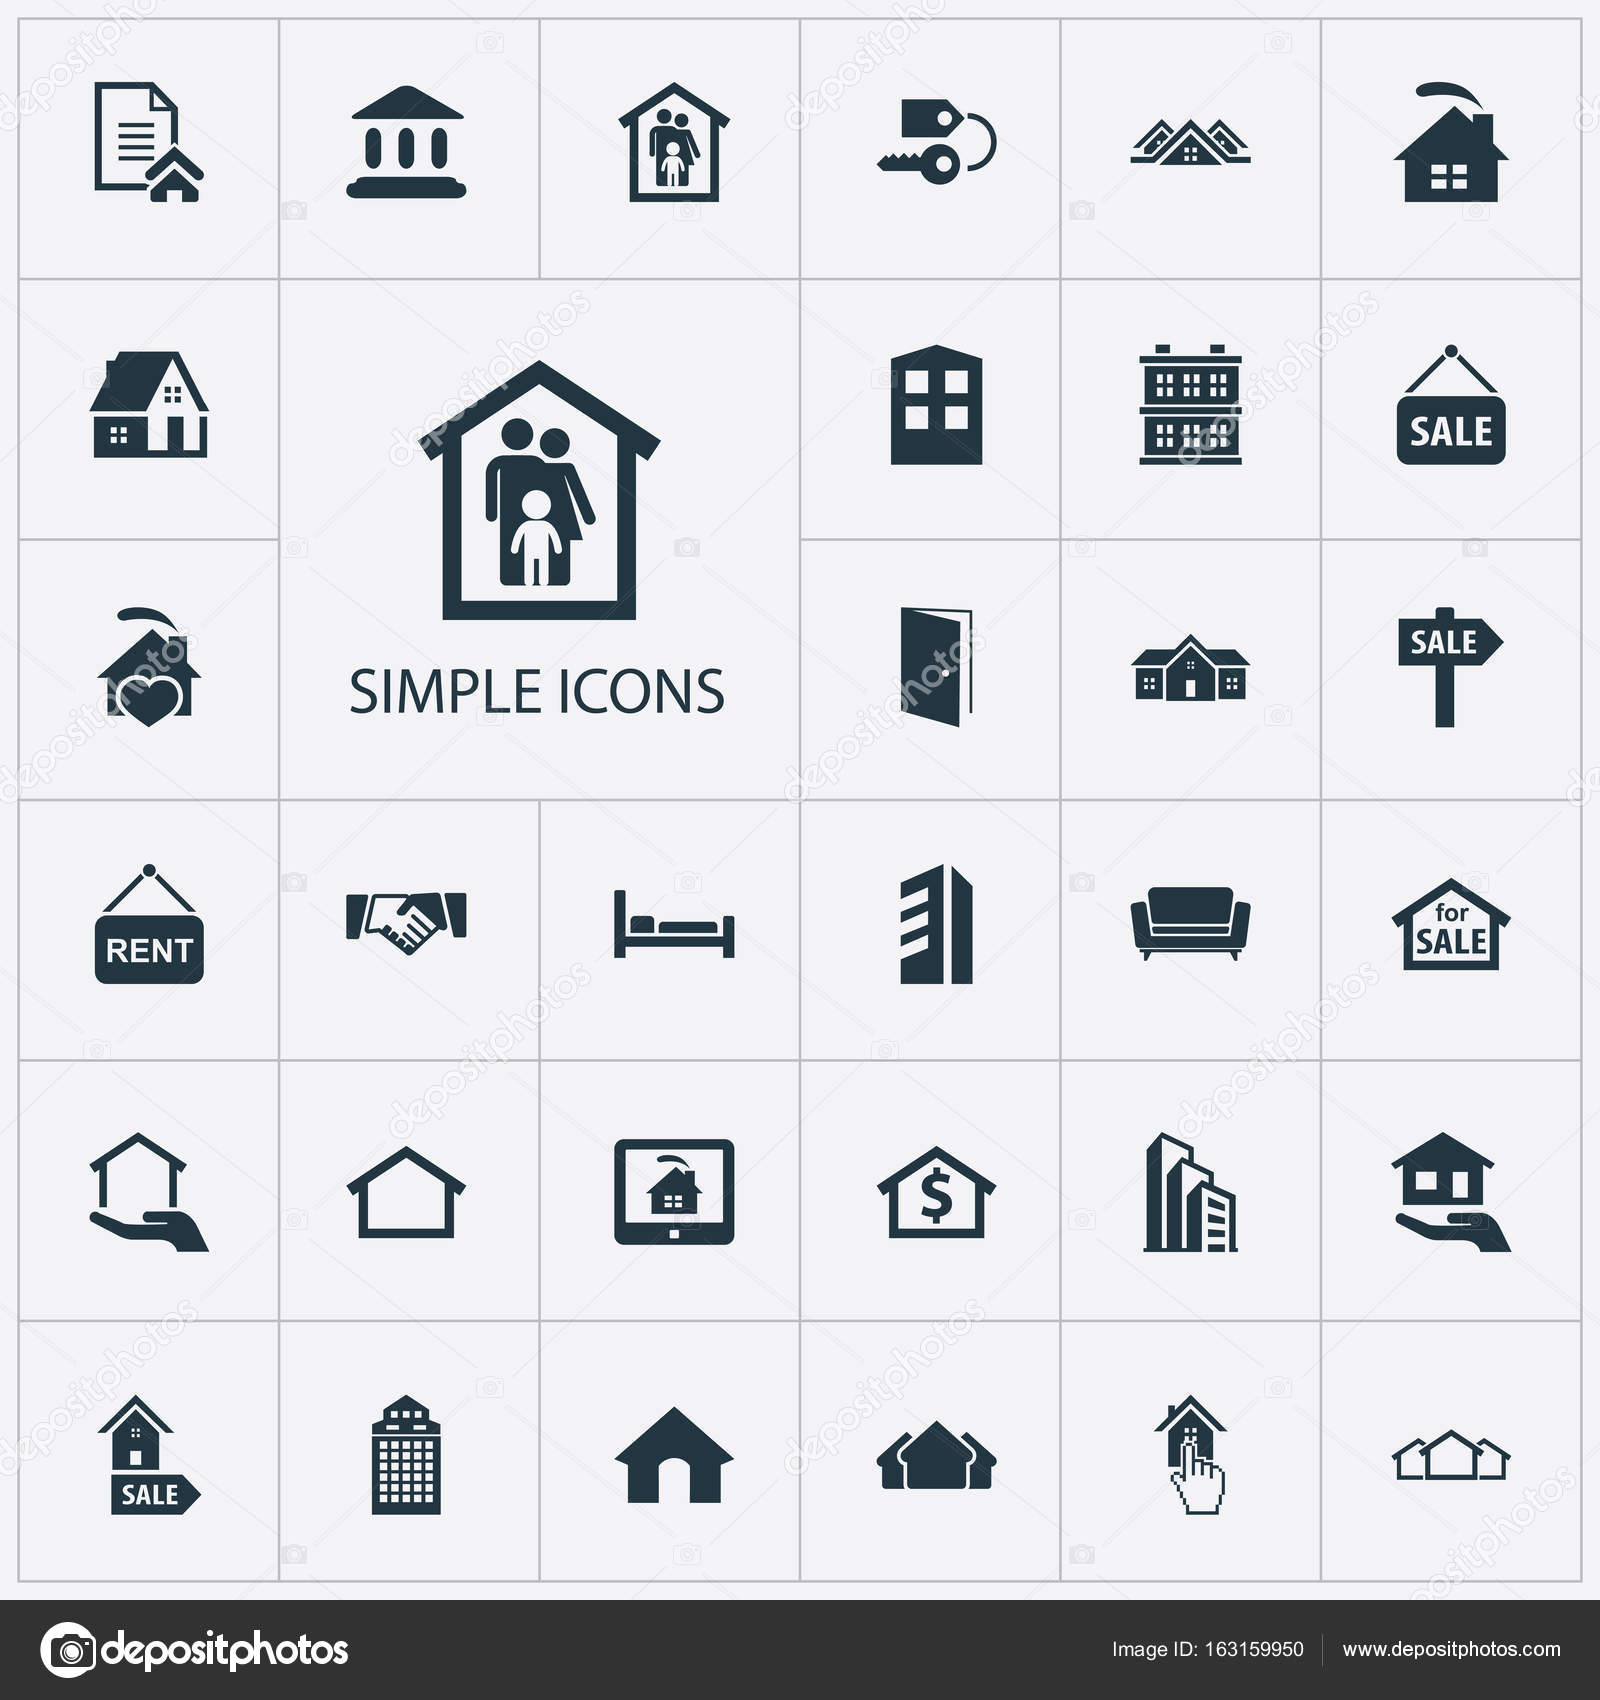 Elements Open Door Insurance Property And Other Synonyms Monitor Advertisement And Sign. Vector Illustration Set Of Simple Estate Icons.  sc 1 st  Depositphotos & Vector Illustration Set Of Simple Estate Icons. Elements Open Door ...